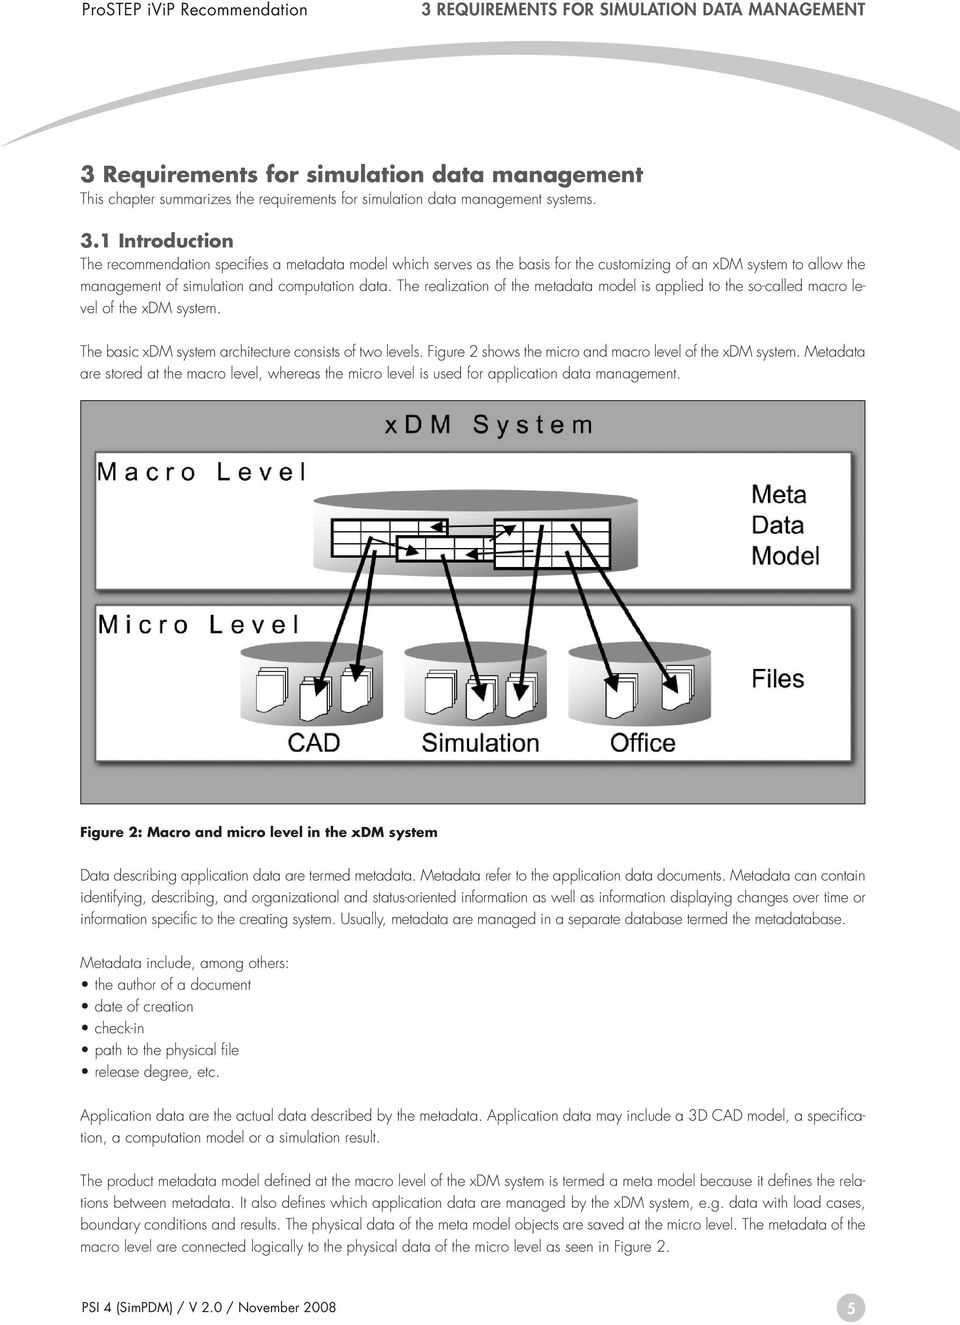 The realization of the metadata model is applied to the so-called macro level of the xdm system. The basic xdm system architecture consists of two levels.